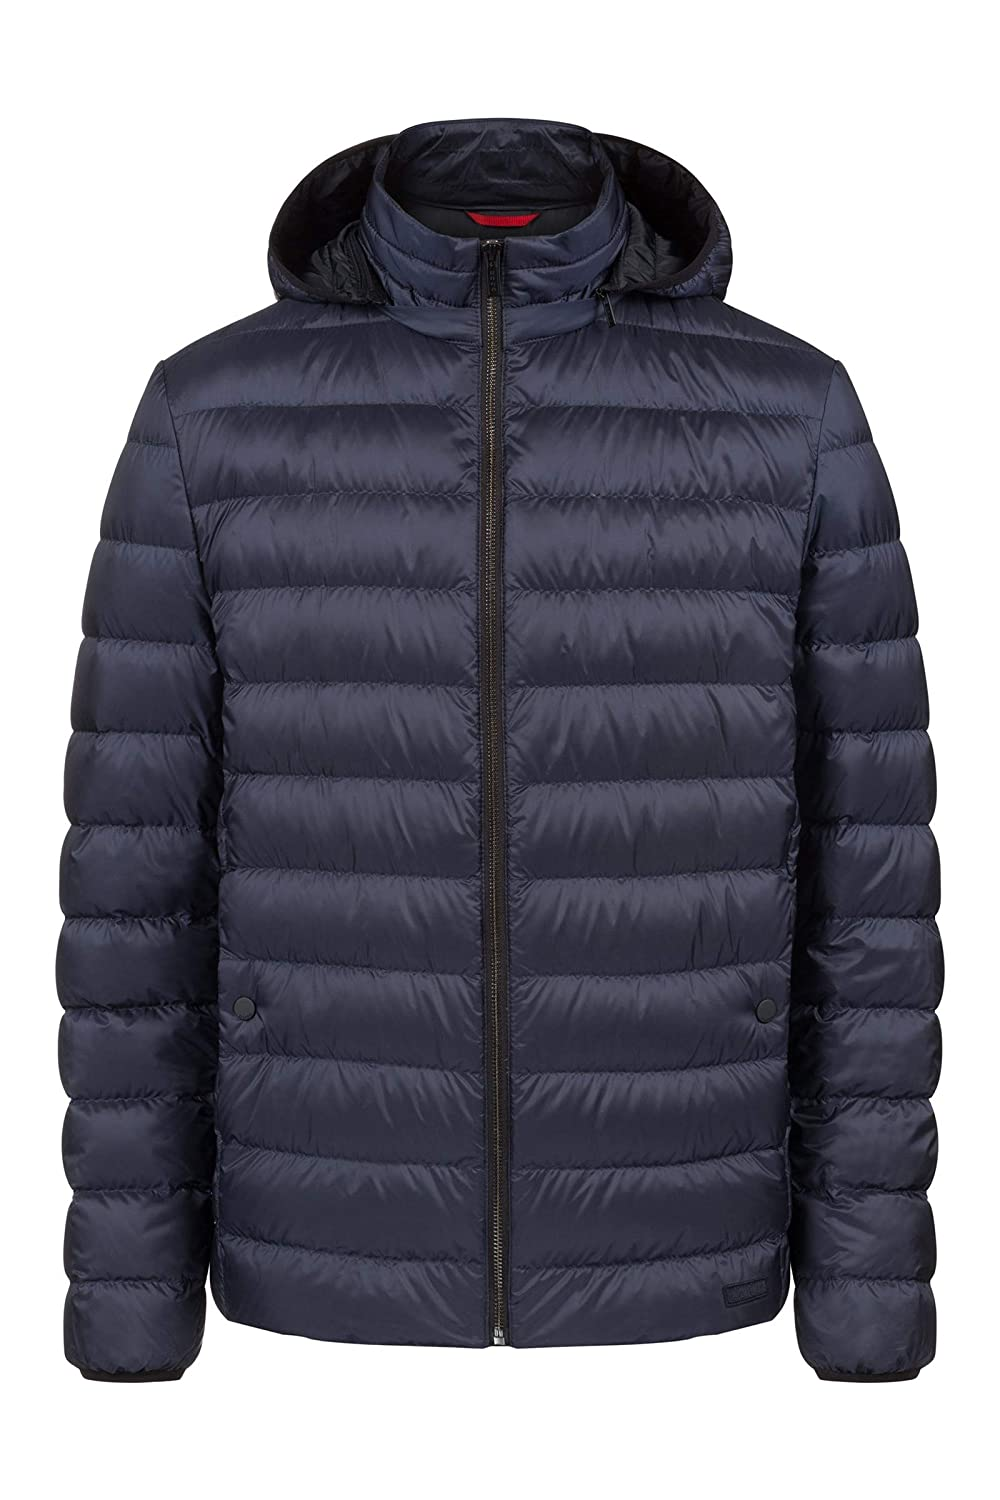 b4fbf61c8e Amazon.com: Hugo Boss Balin 1841 Mens Puffer Jacket with Hood: Clothing